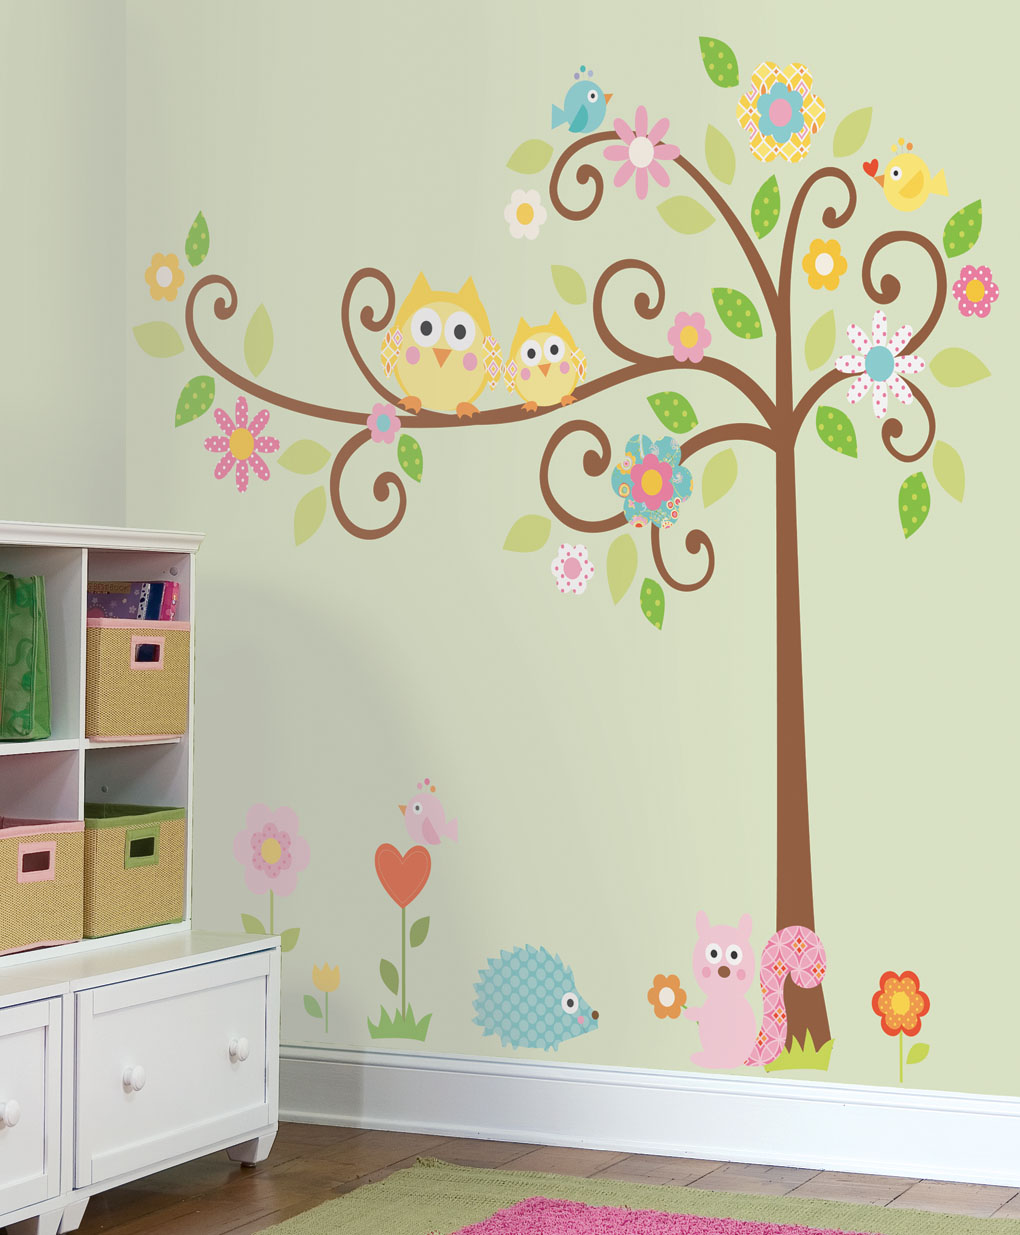 Wall decals kids art wall decor for Mural kids room